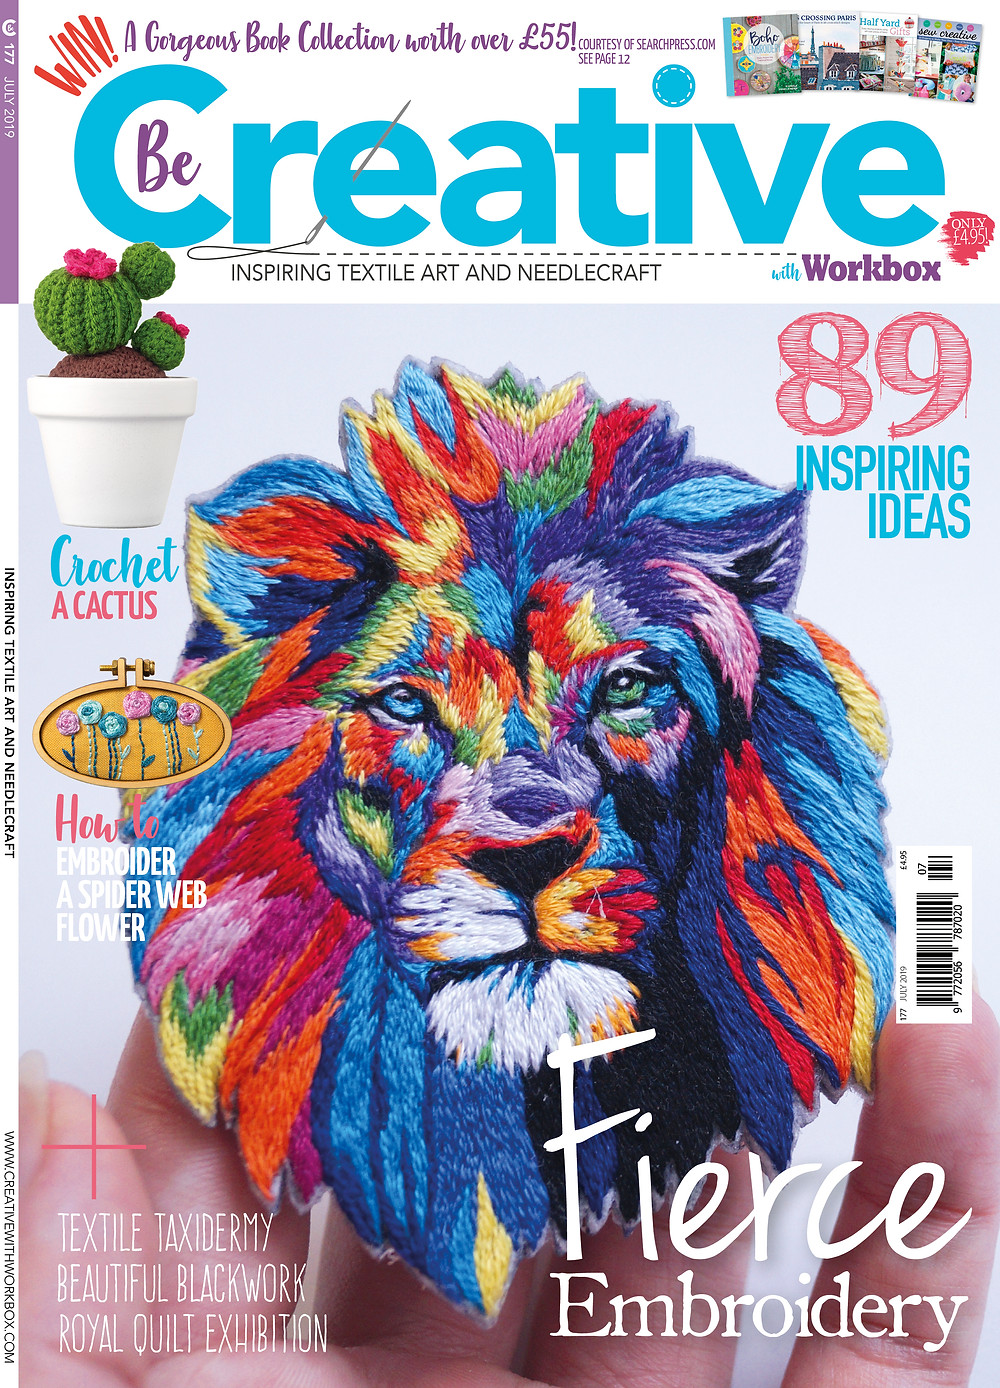 ccunningham-textileartist.com FEATURED IN 'BE CREATIVE' MAGAZINE: HOW TO CREATE A FLAT LAYERED SURFACE USING OFF-CUTS AND SCRAPS OF FABRIC.